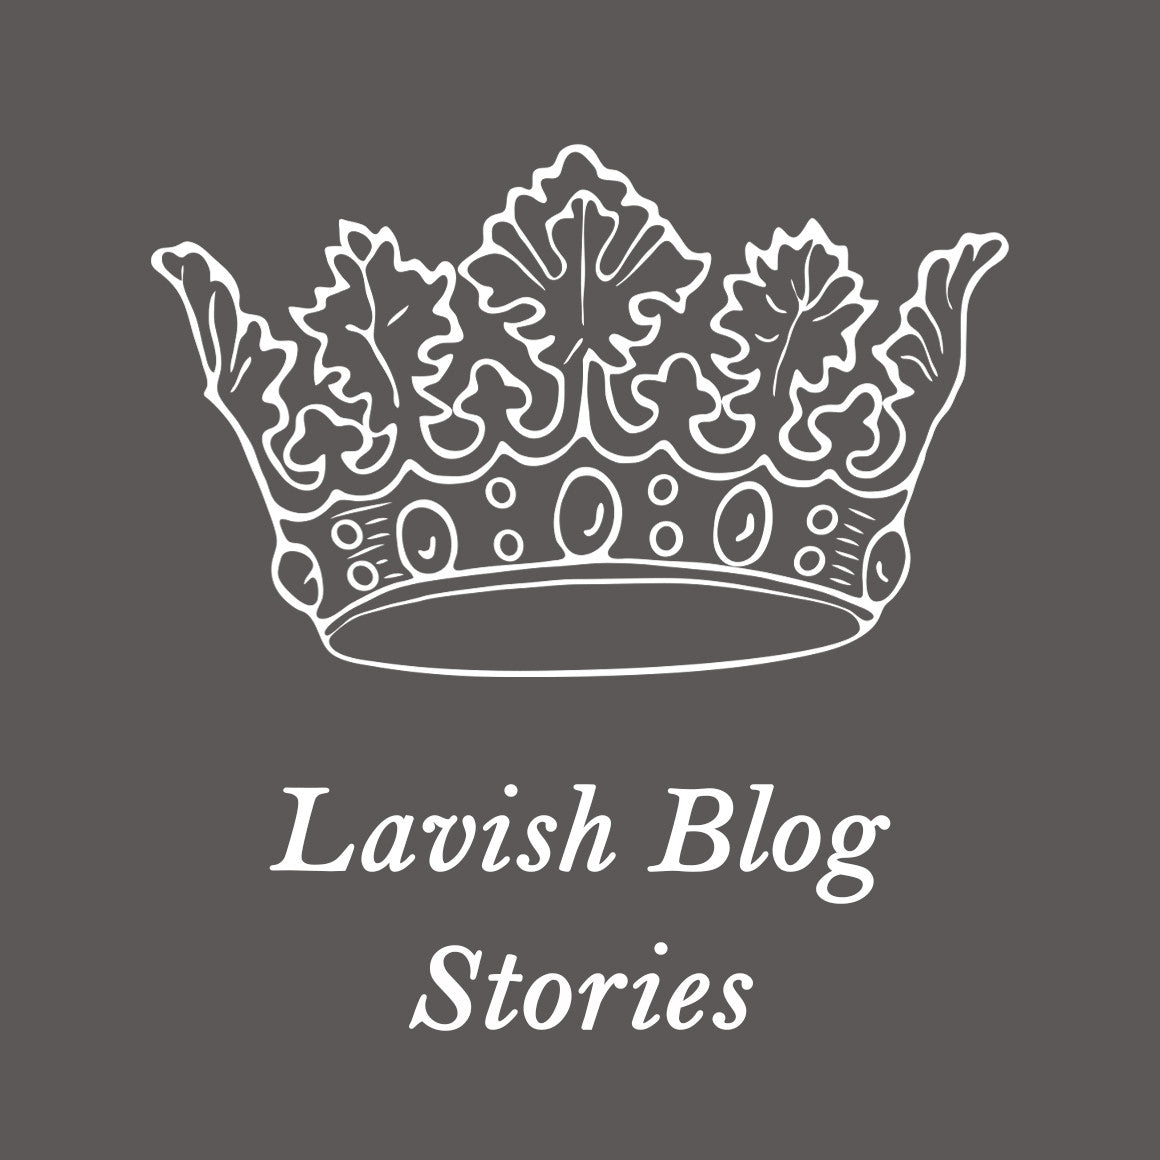 Lavish Your Soul stories blog, Lavish Three 3